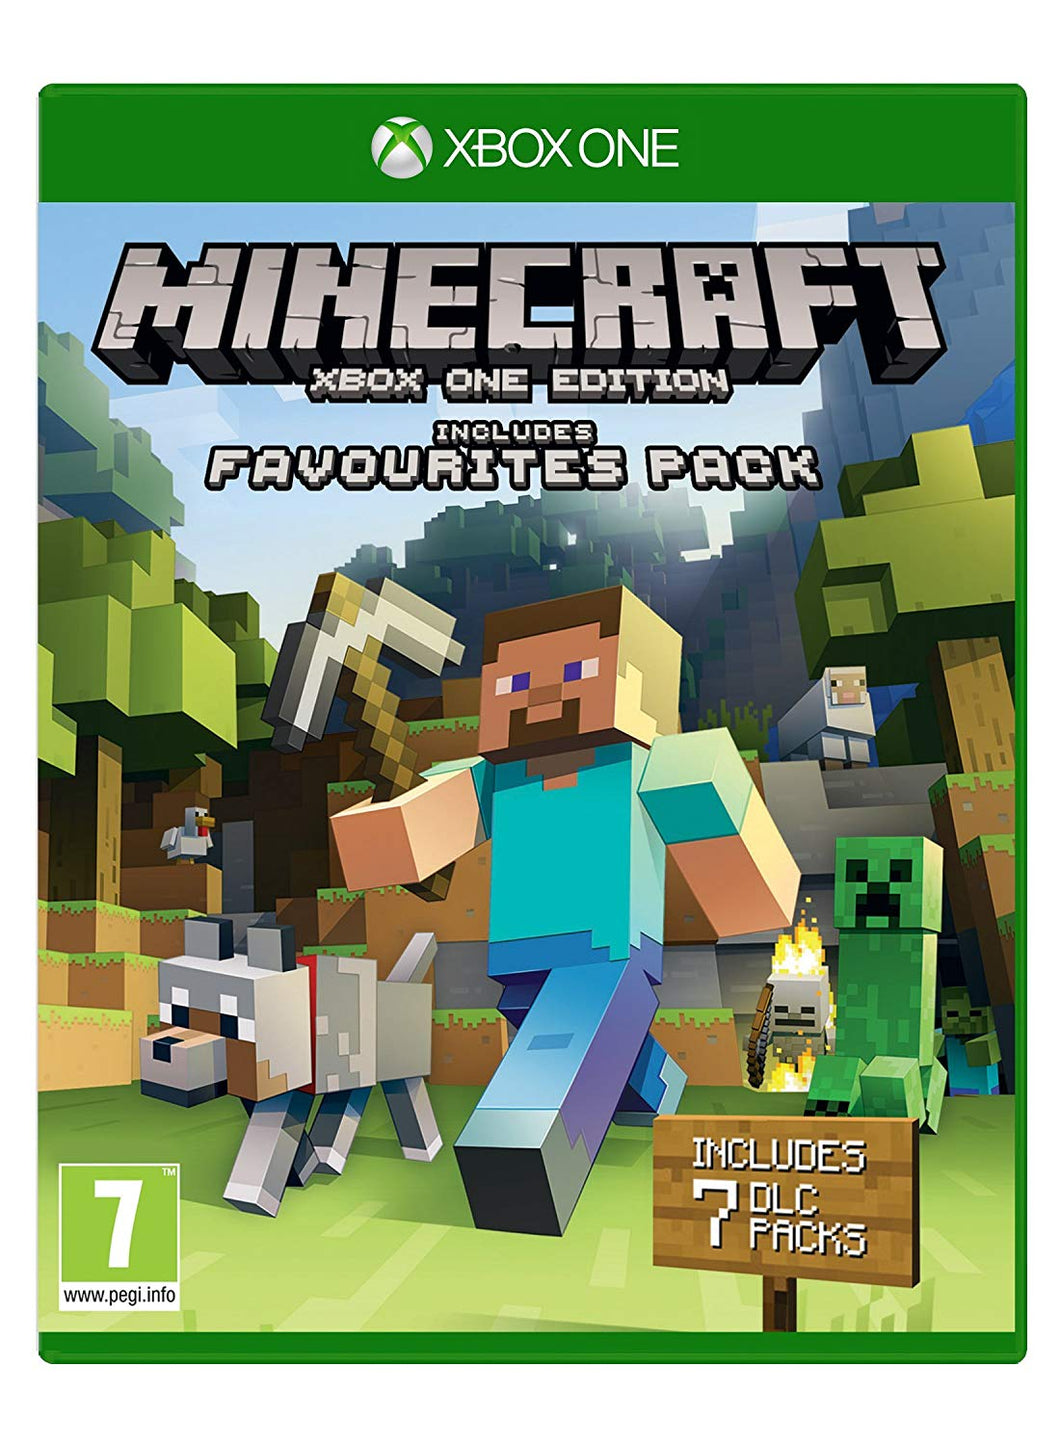 MINECRAFT - XBOX ONE EDITION Includes FAVOURITES PACK